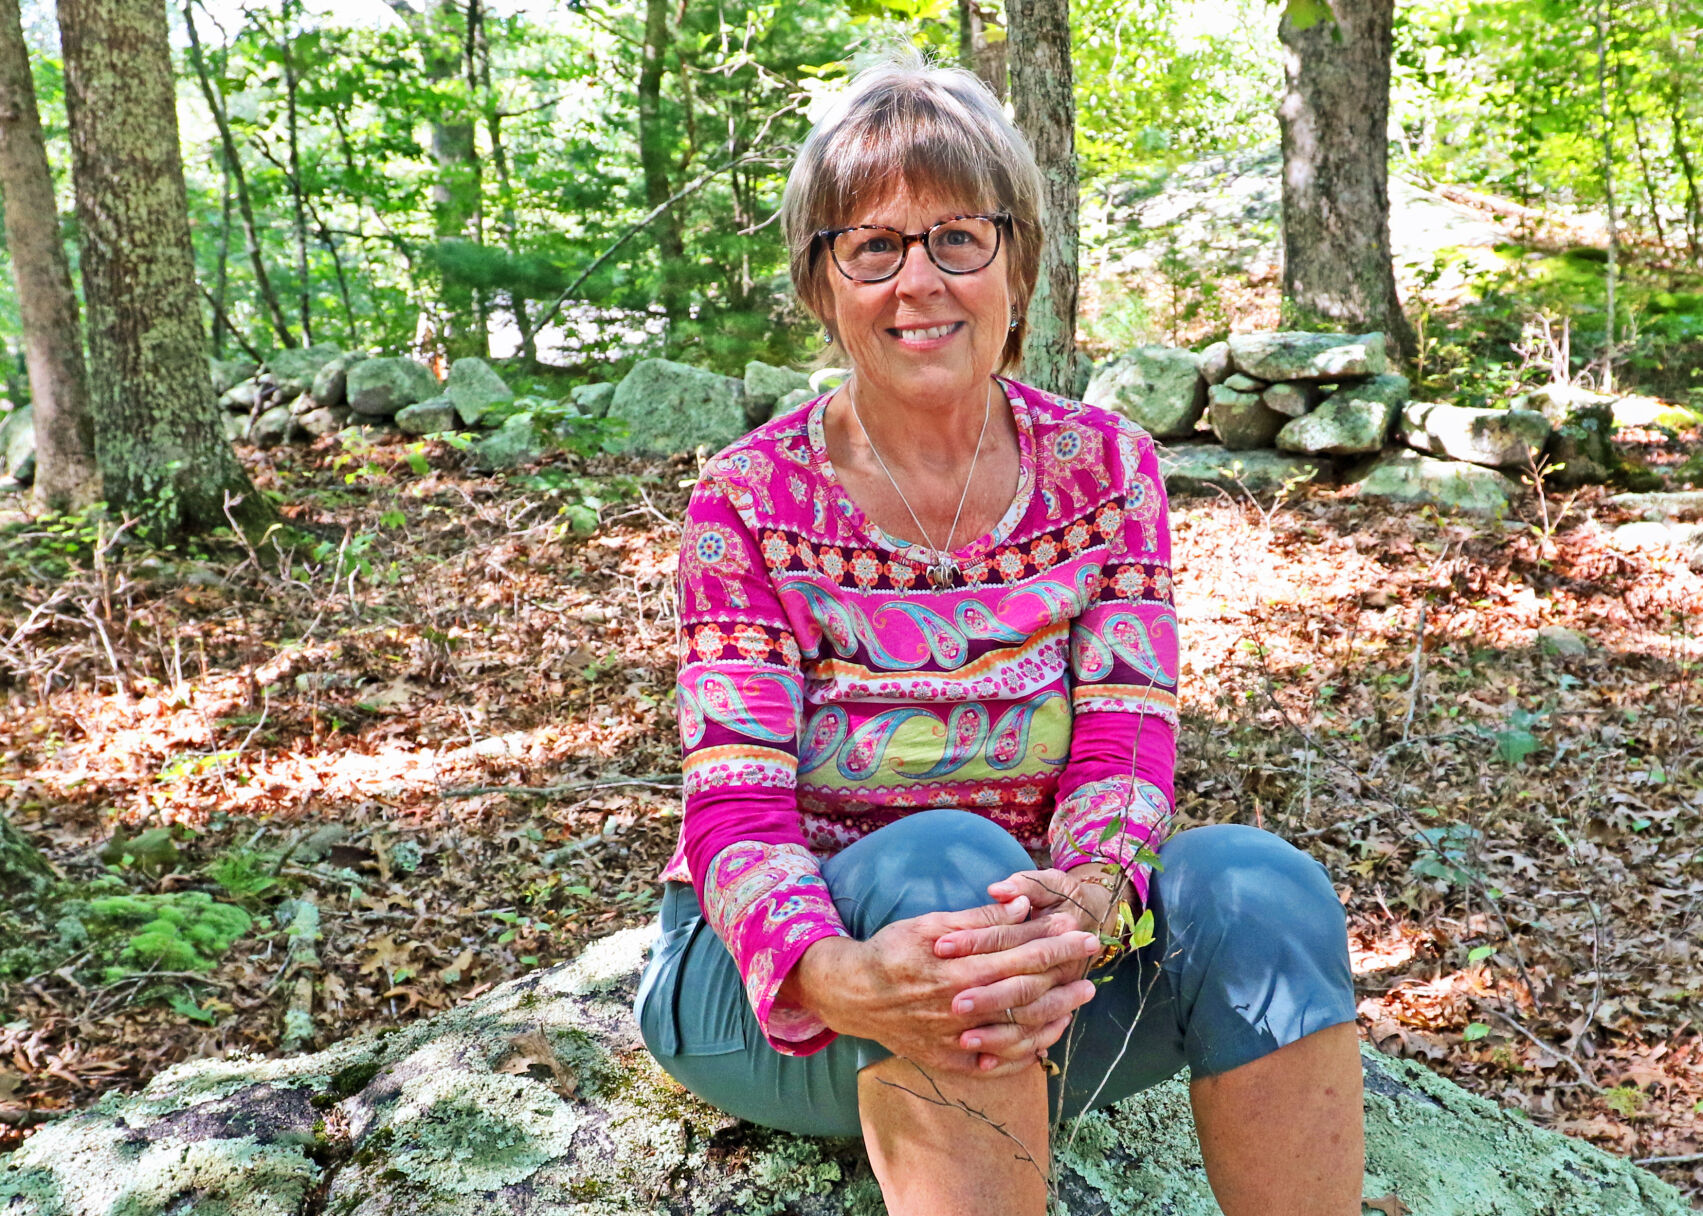 The healing power of nature — Deirdre O'Connor introduces forest bathing to clients